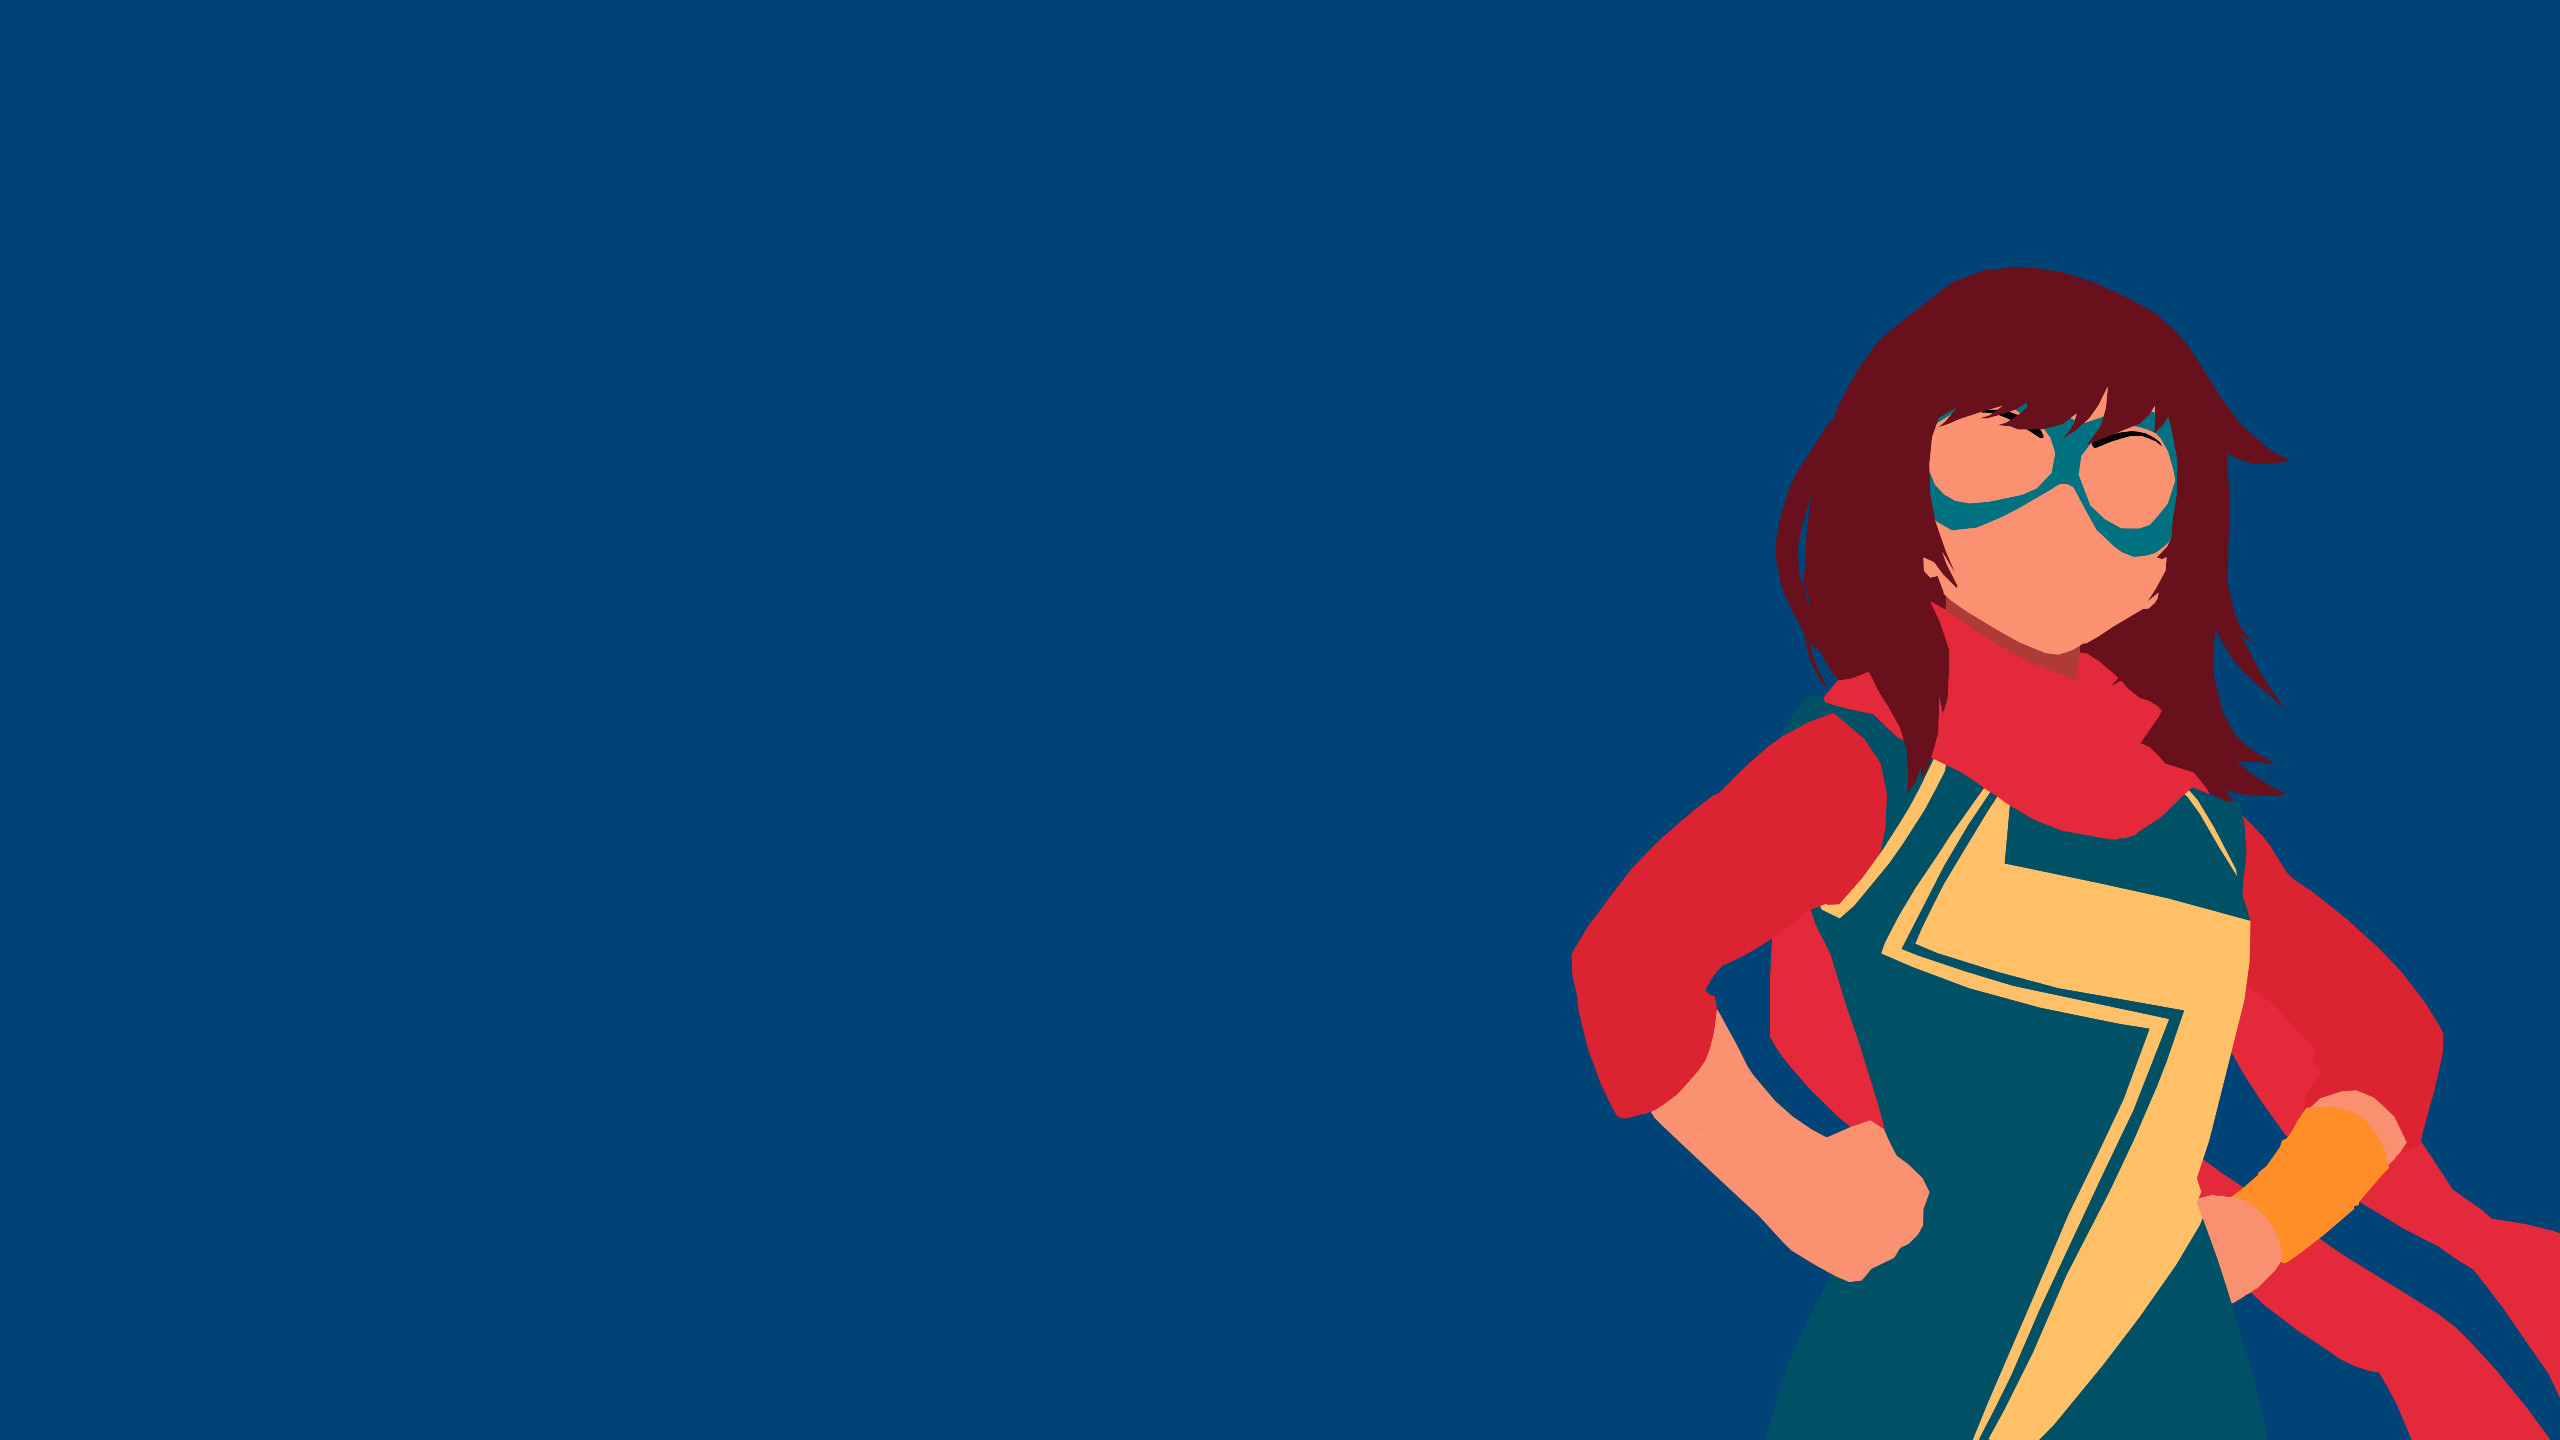 Ms. Marvel Wallpapers